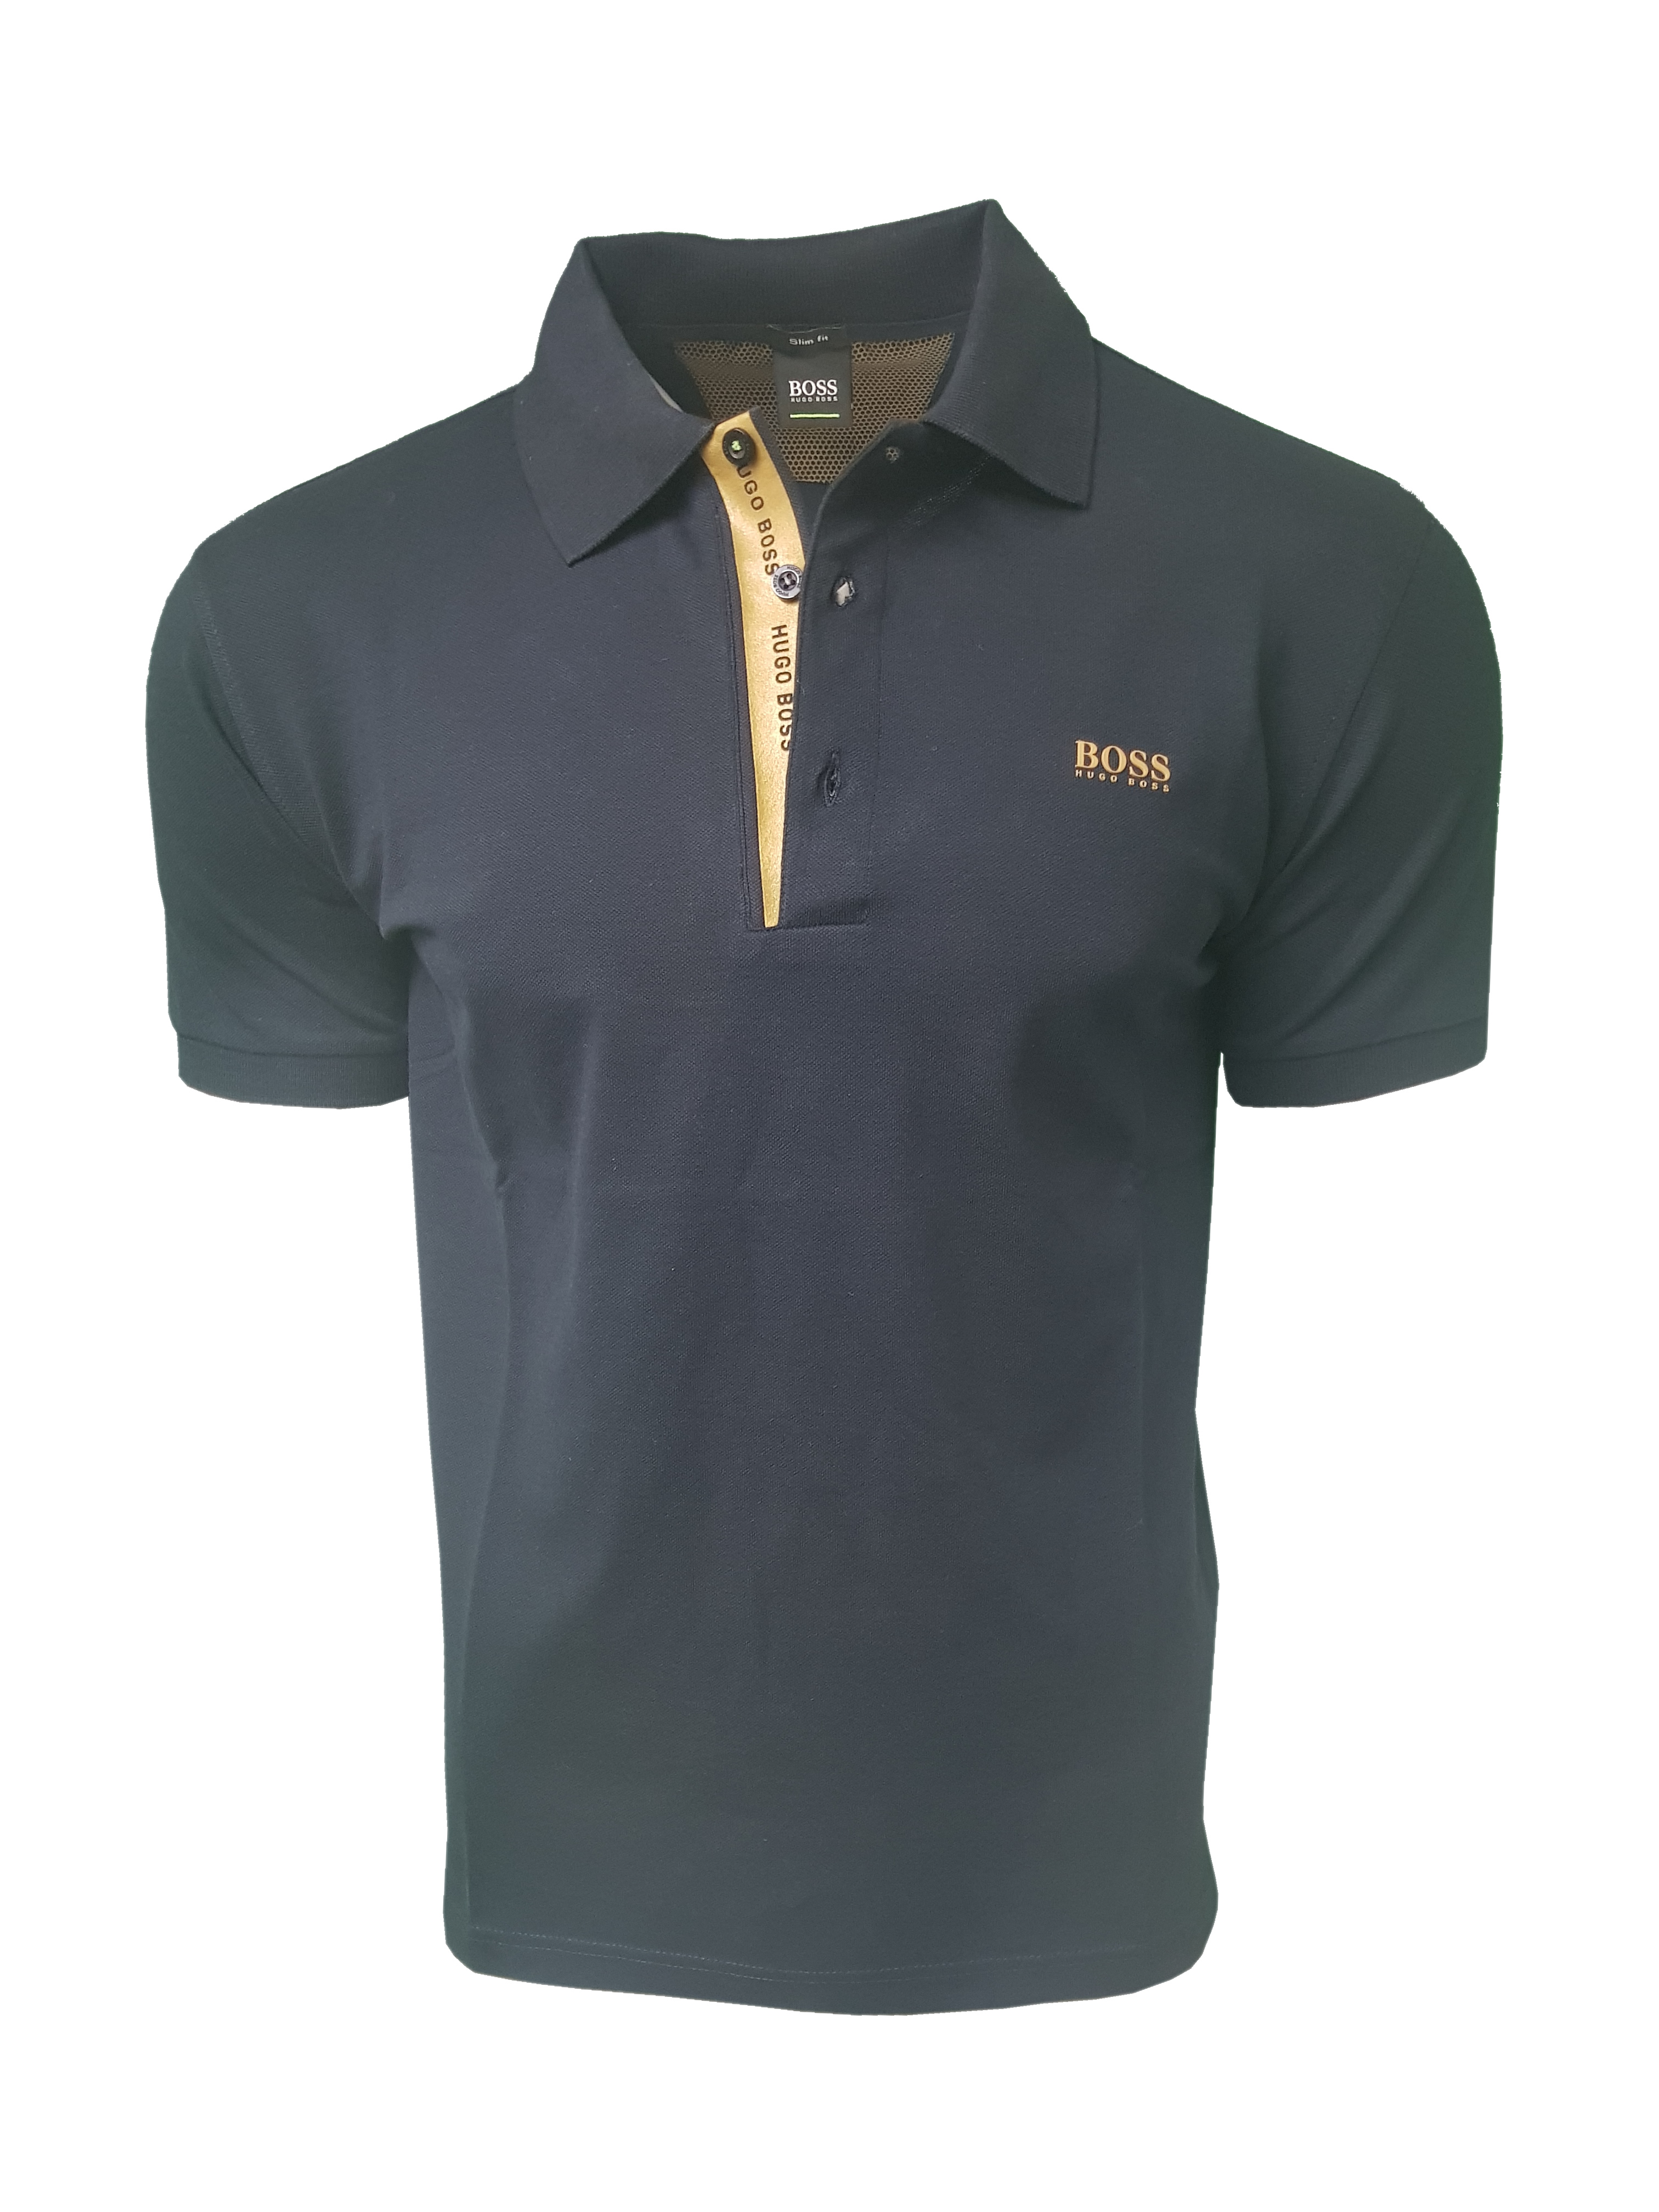 f1182bd51 Hugo Boss Polo Shirt. Short Sleeve with Golden Placket in Navy Blue ...